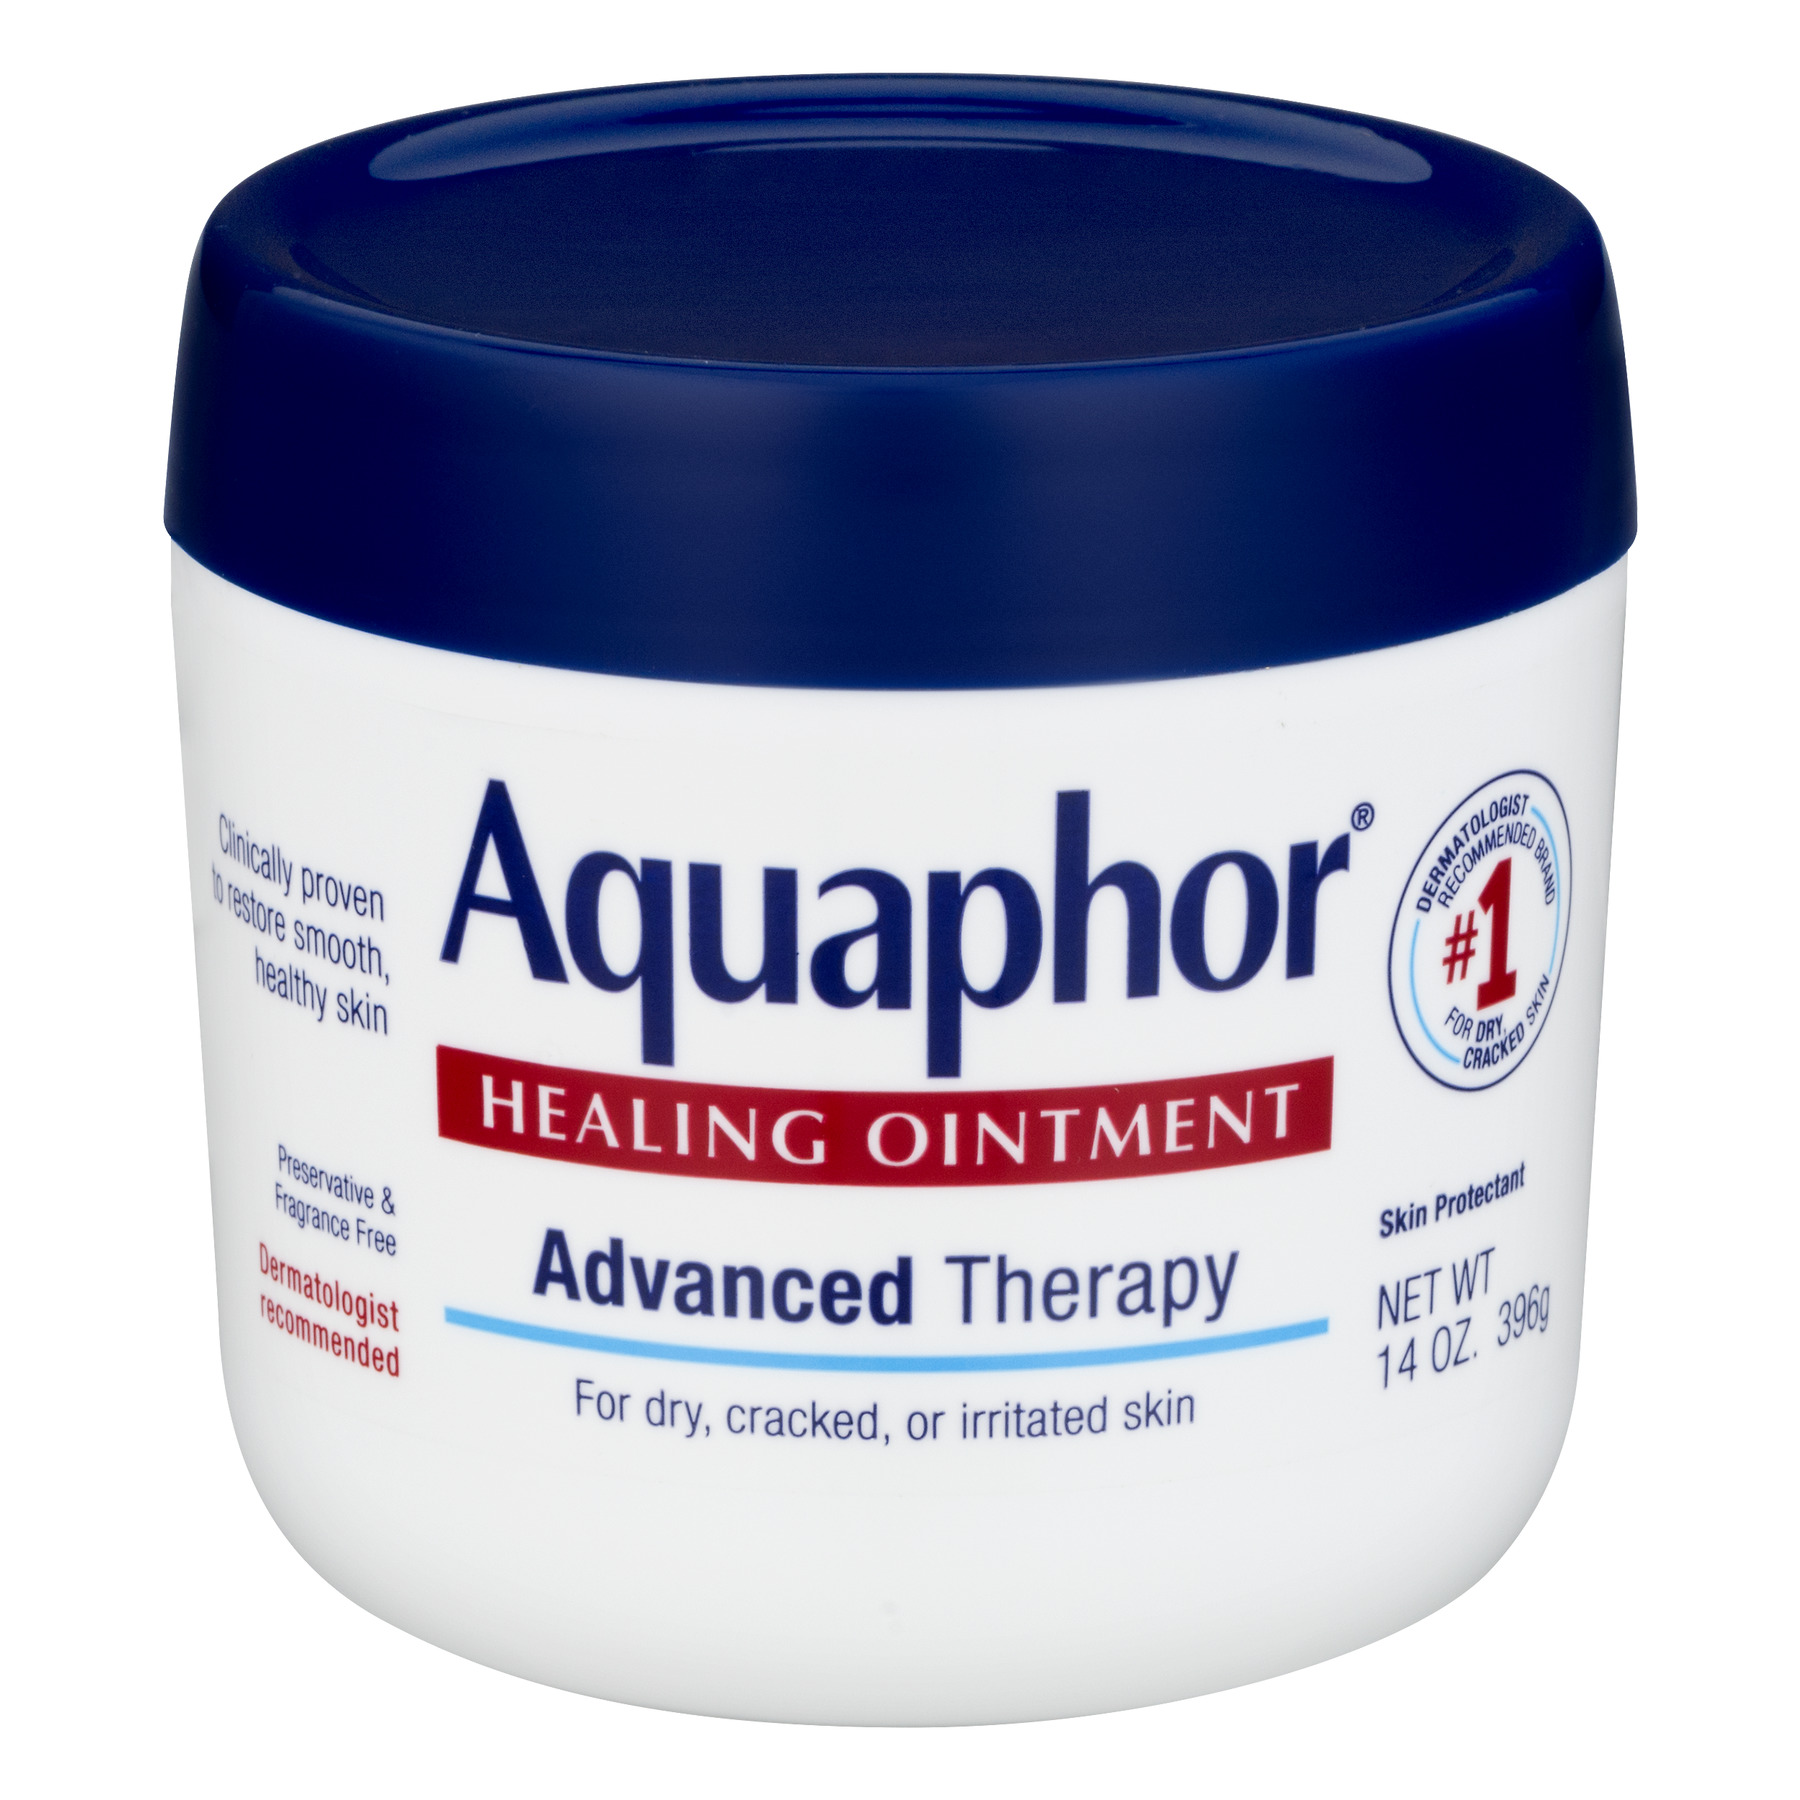 Aquaphor Healing Ointment Advanced Therapy, 14.0 OZ